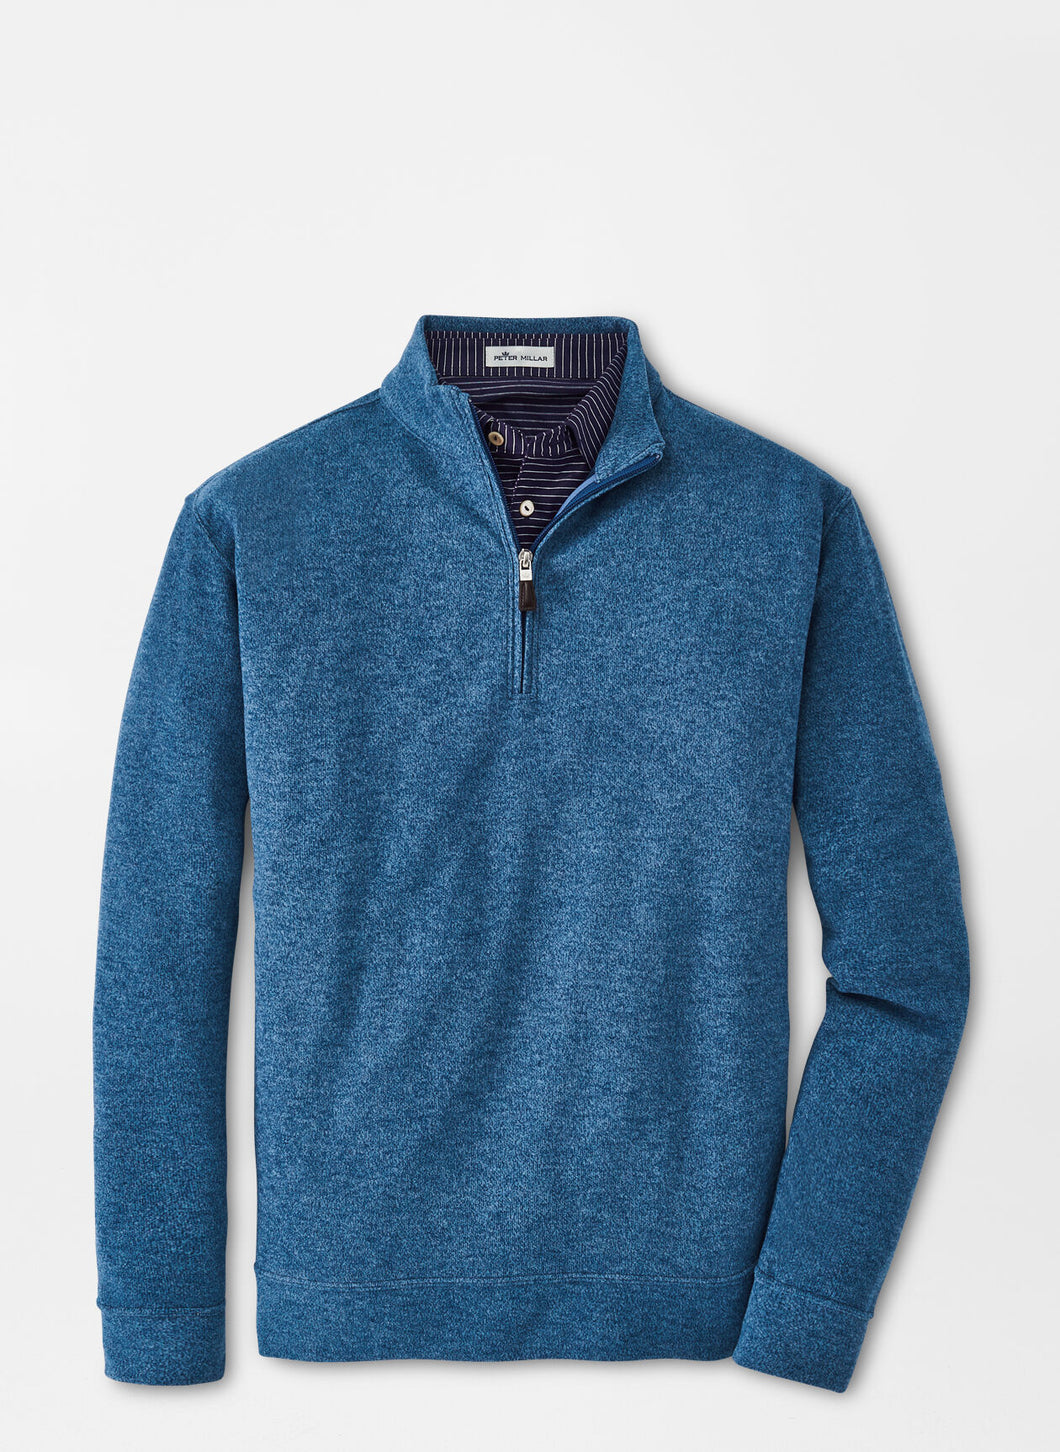 Peter Millar Arnie Fleece Quarter-Zip in City Blue